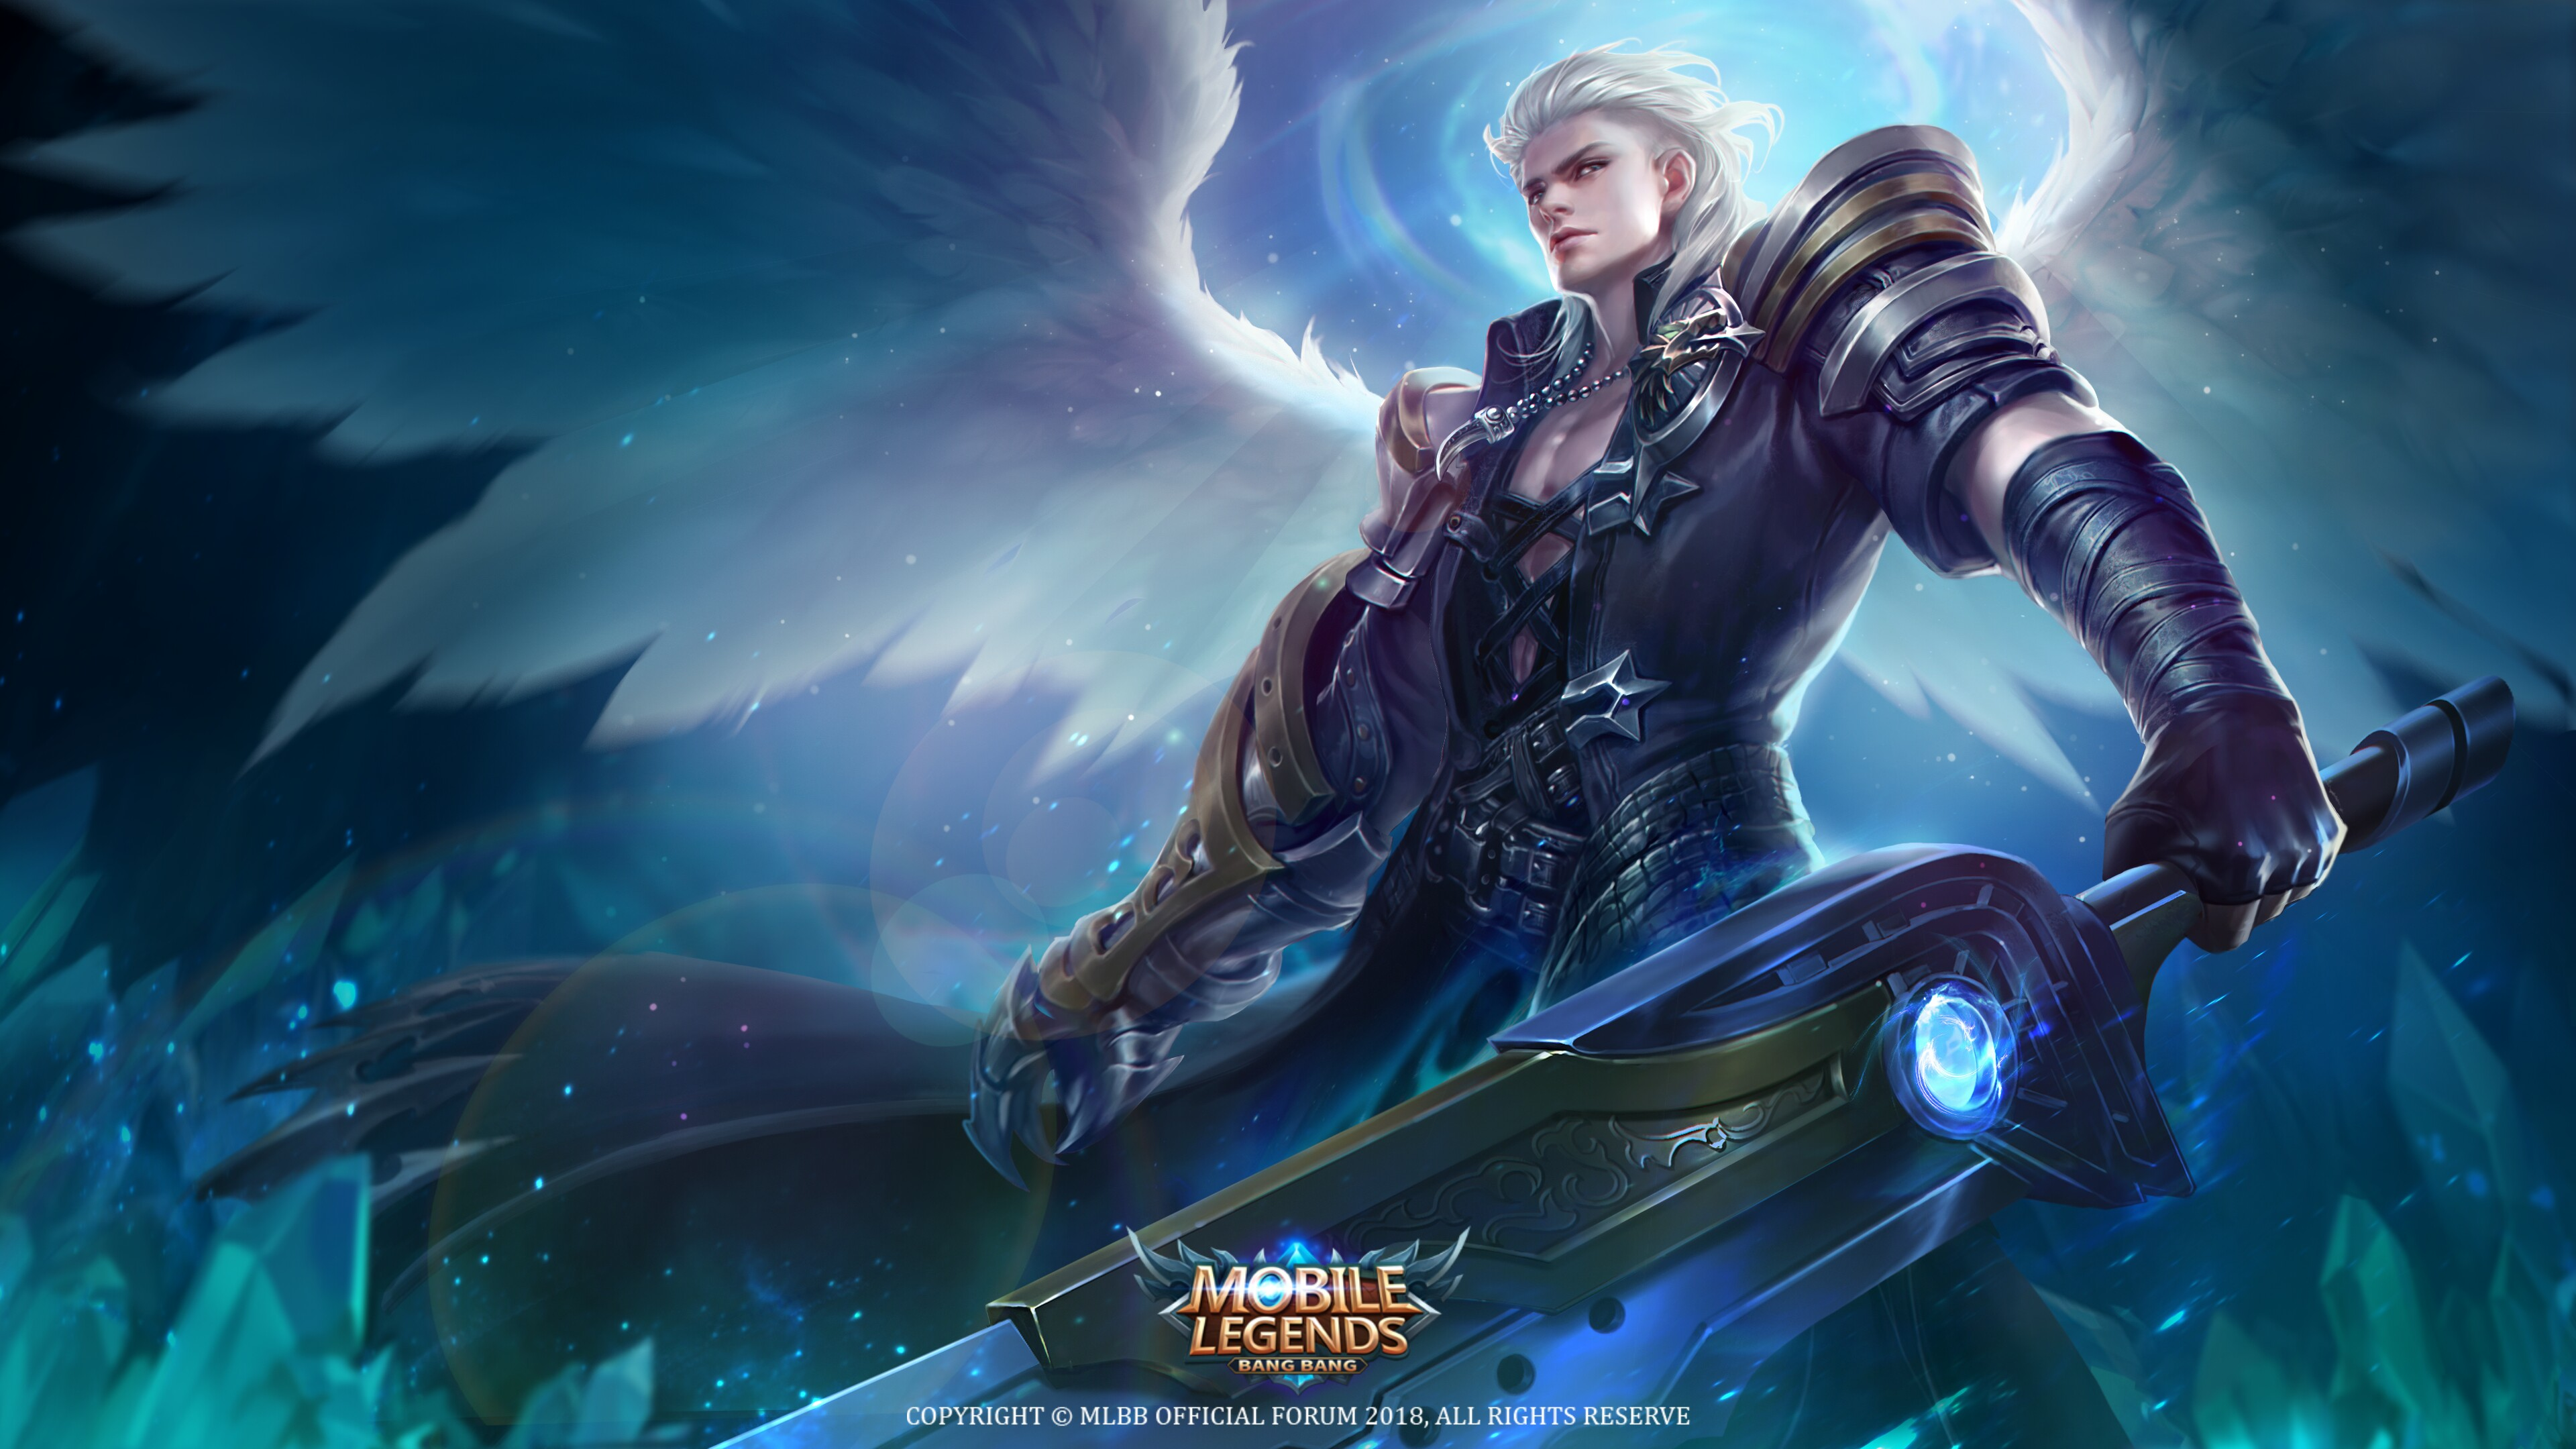 Alucard_Skin03_Child_of_the_Fall_HD_Wallpaper-.png